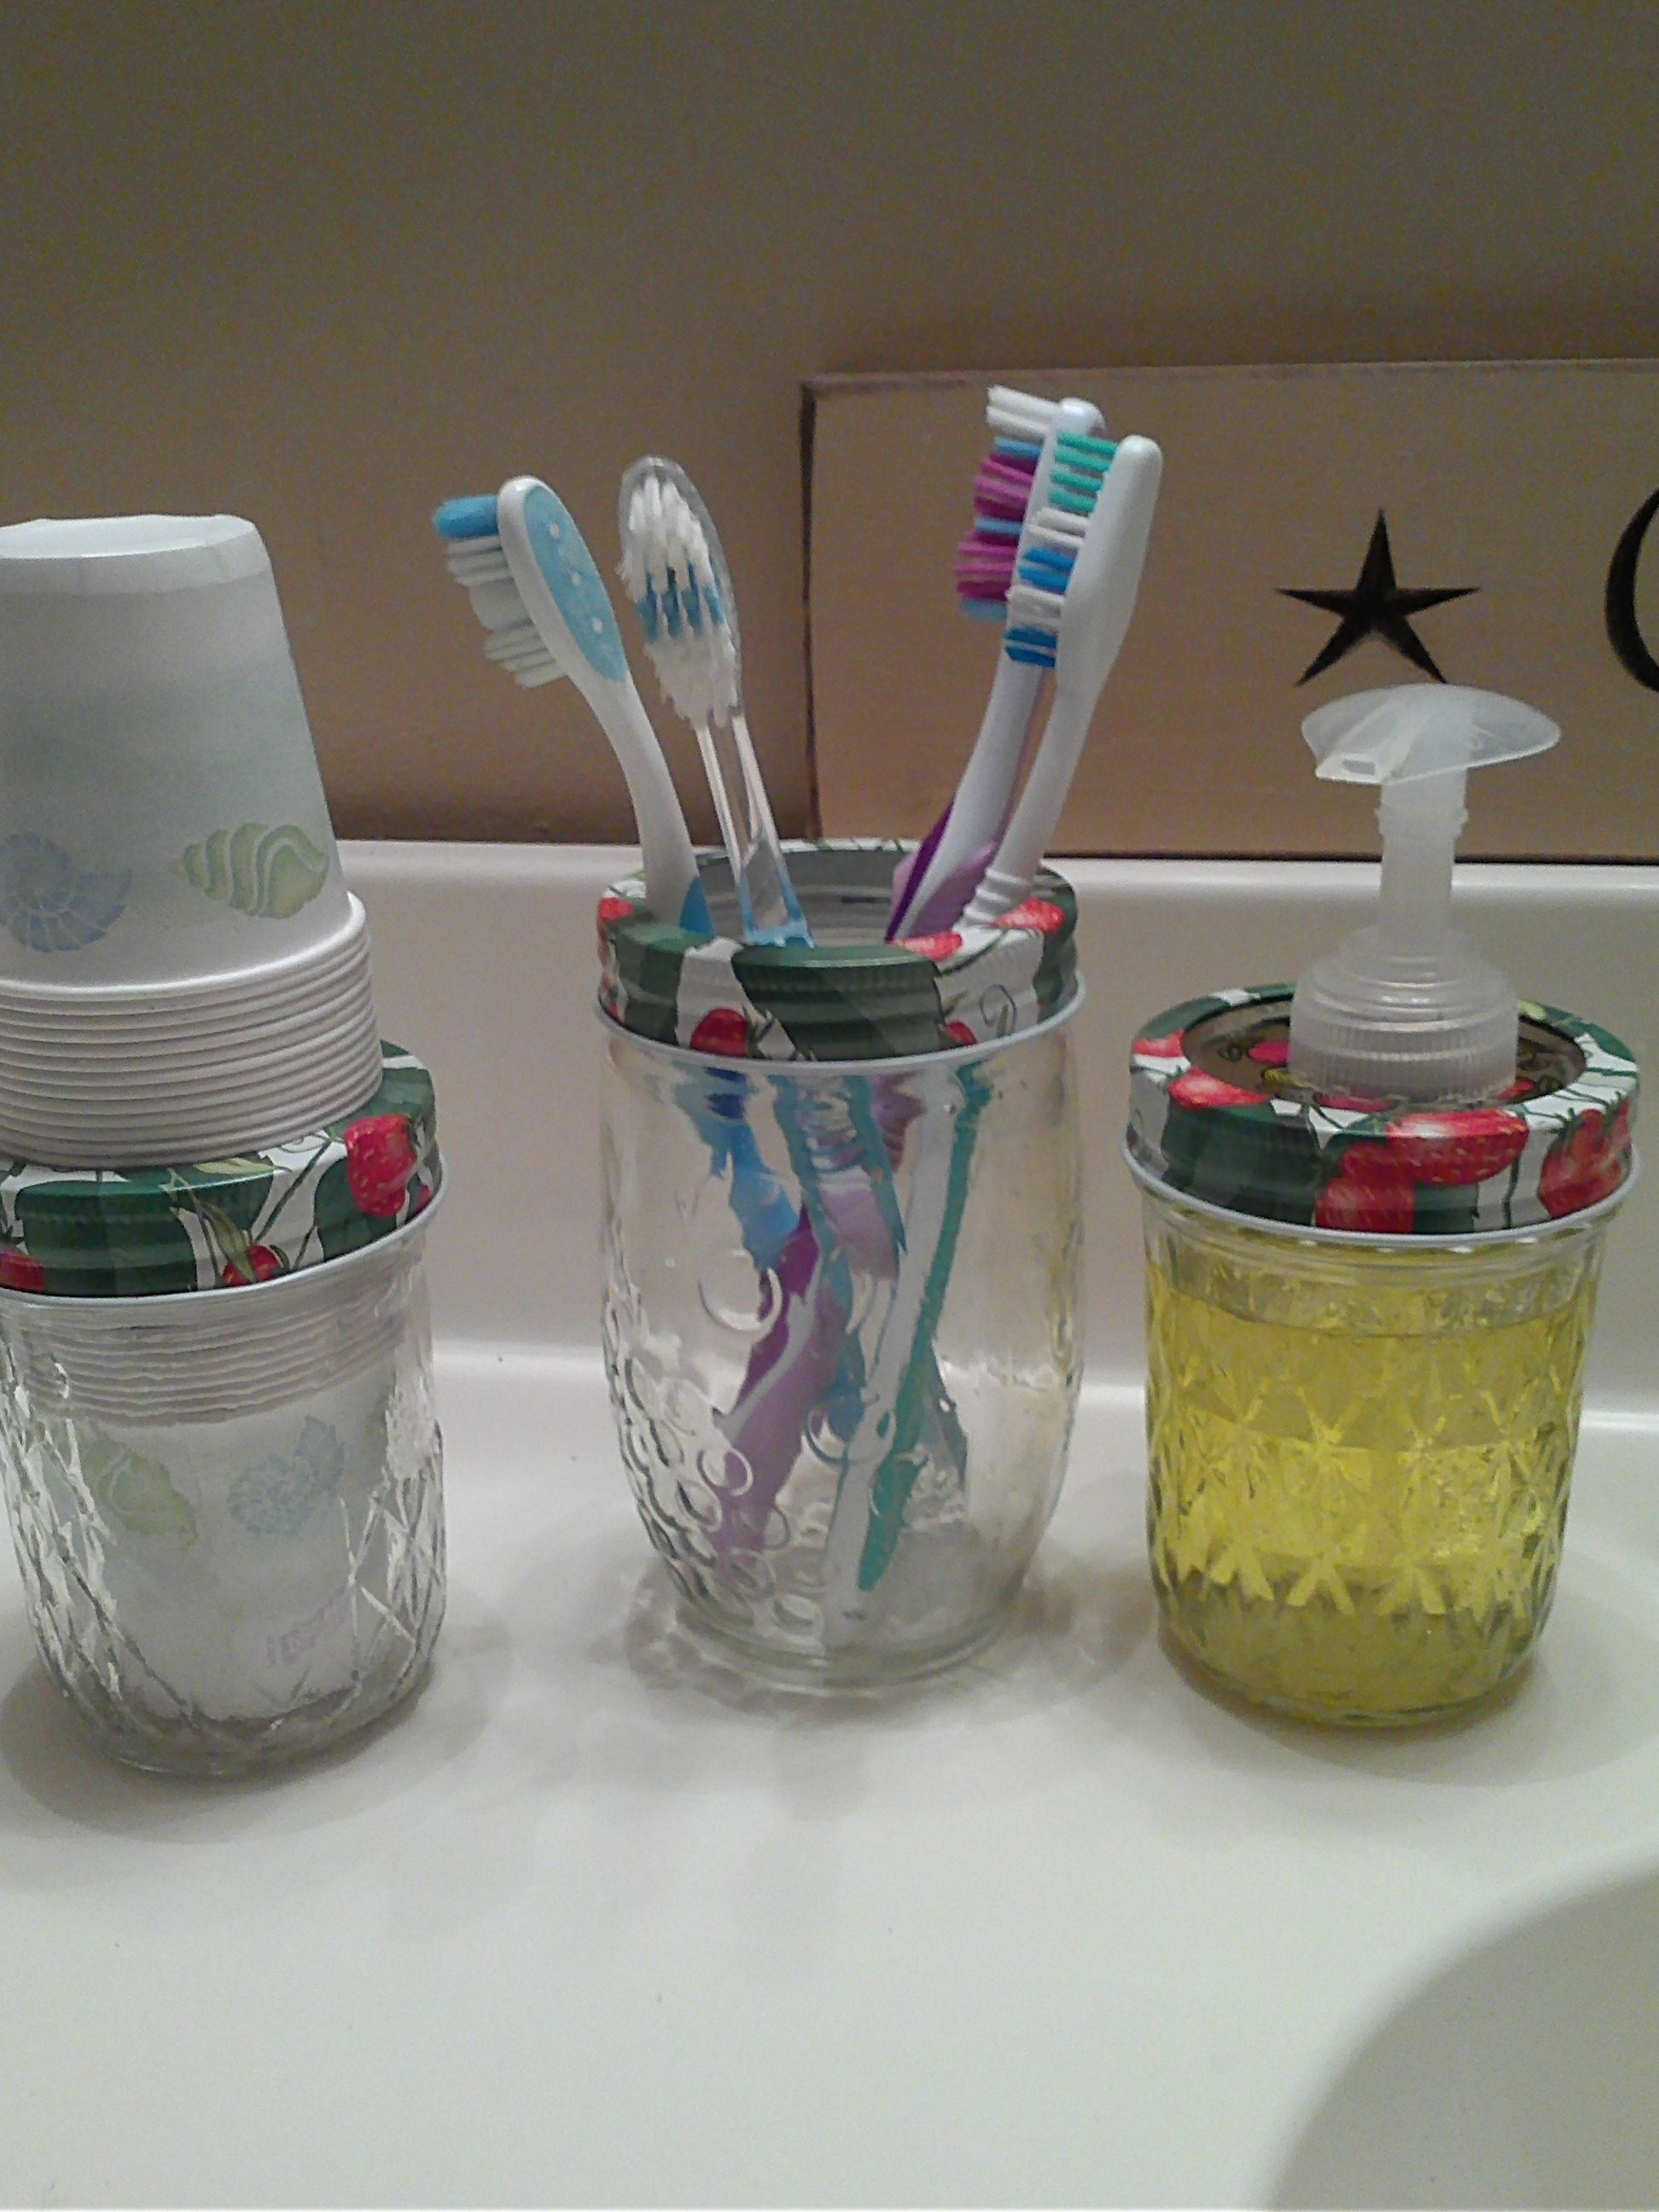 Bathroom Set Mason Jars Dixie Cup Dispenser Toothbrush Holder And Soap